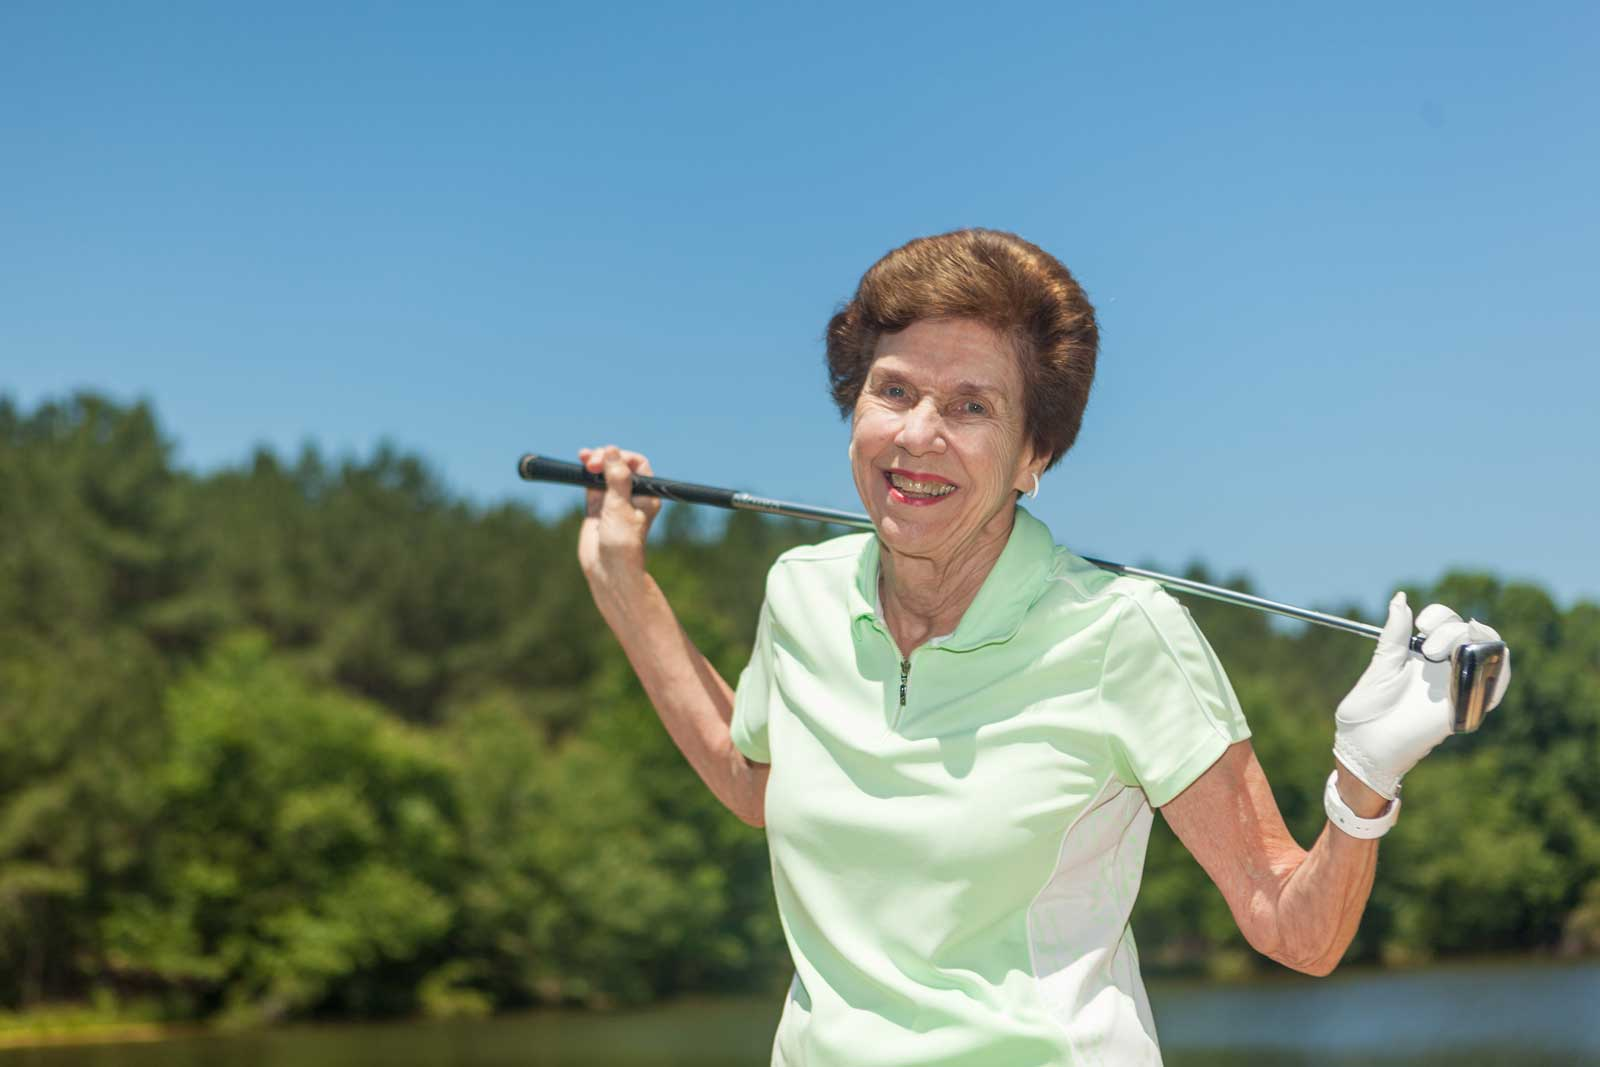 woman-enjoys-golfing